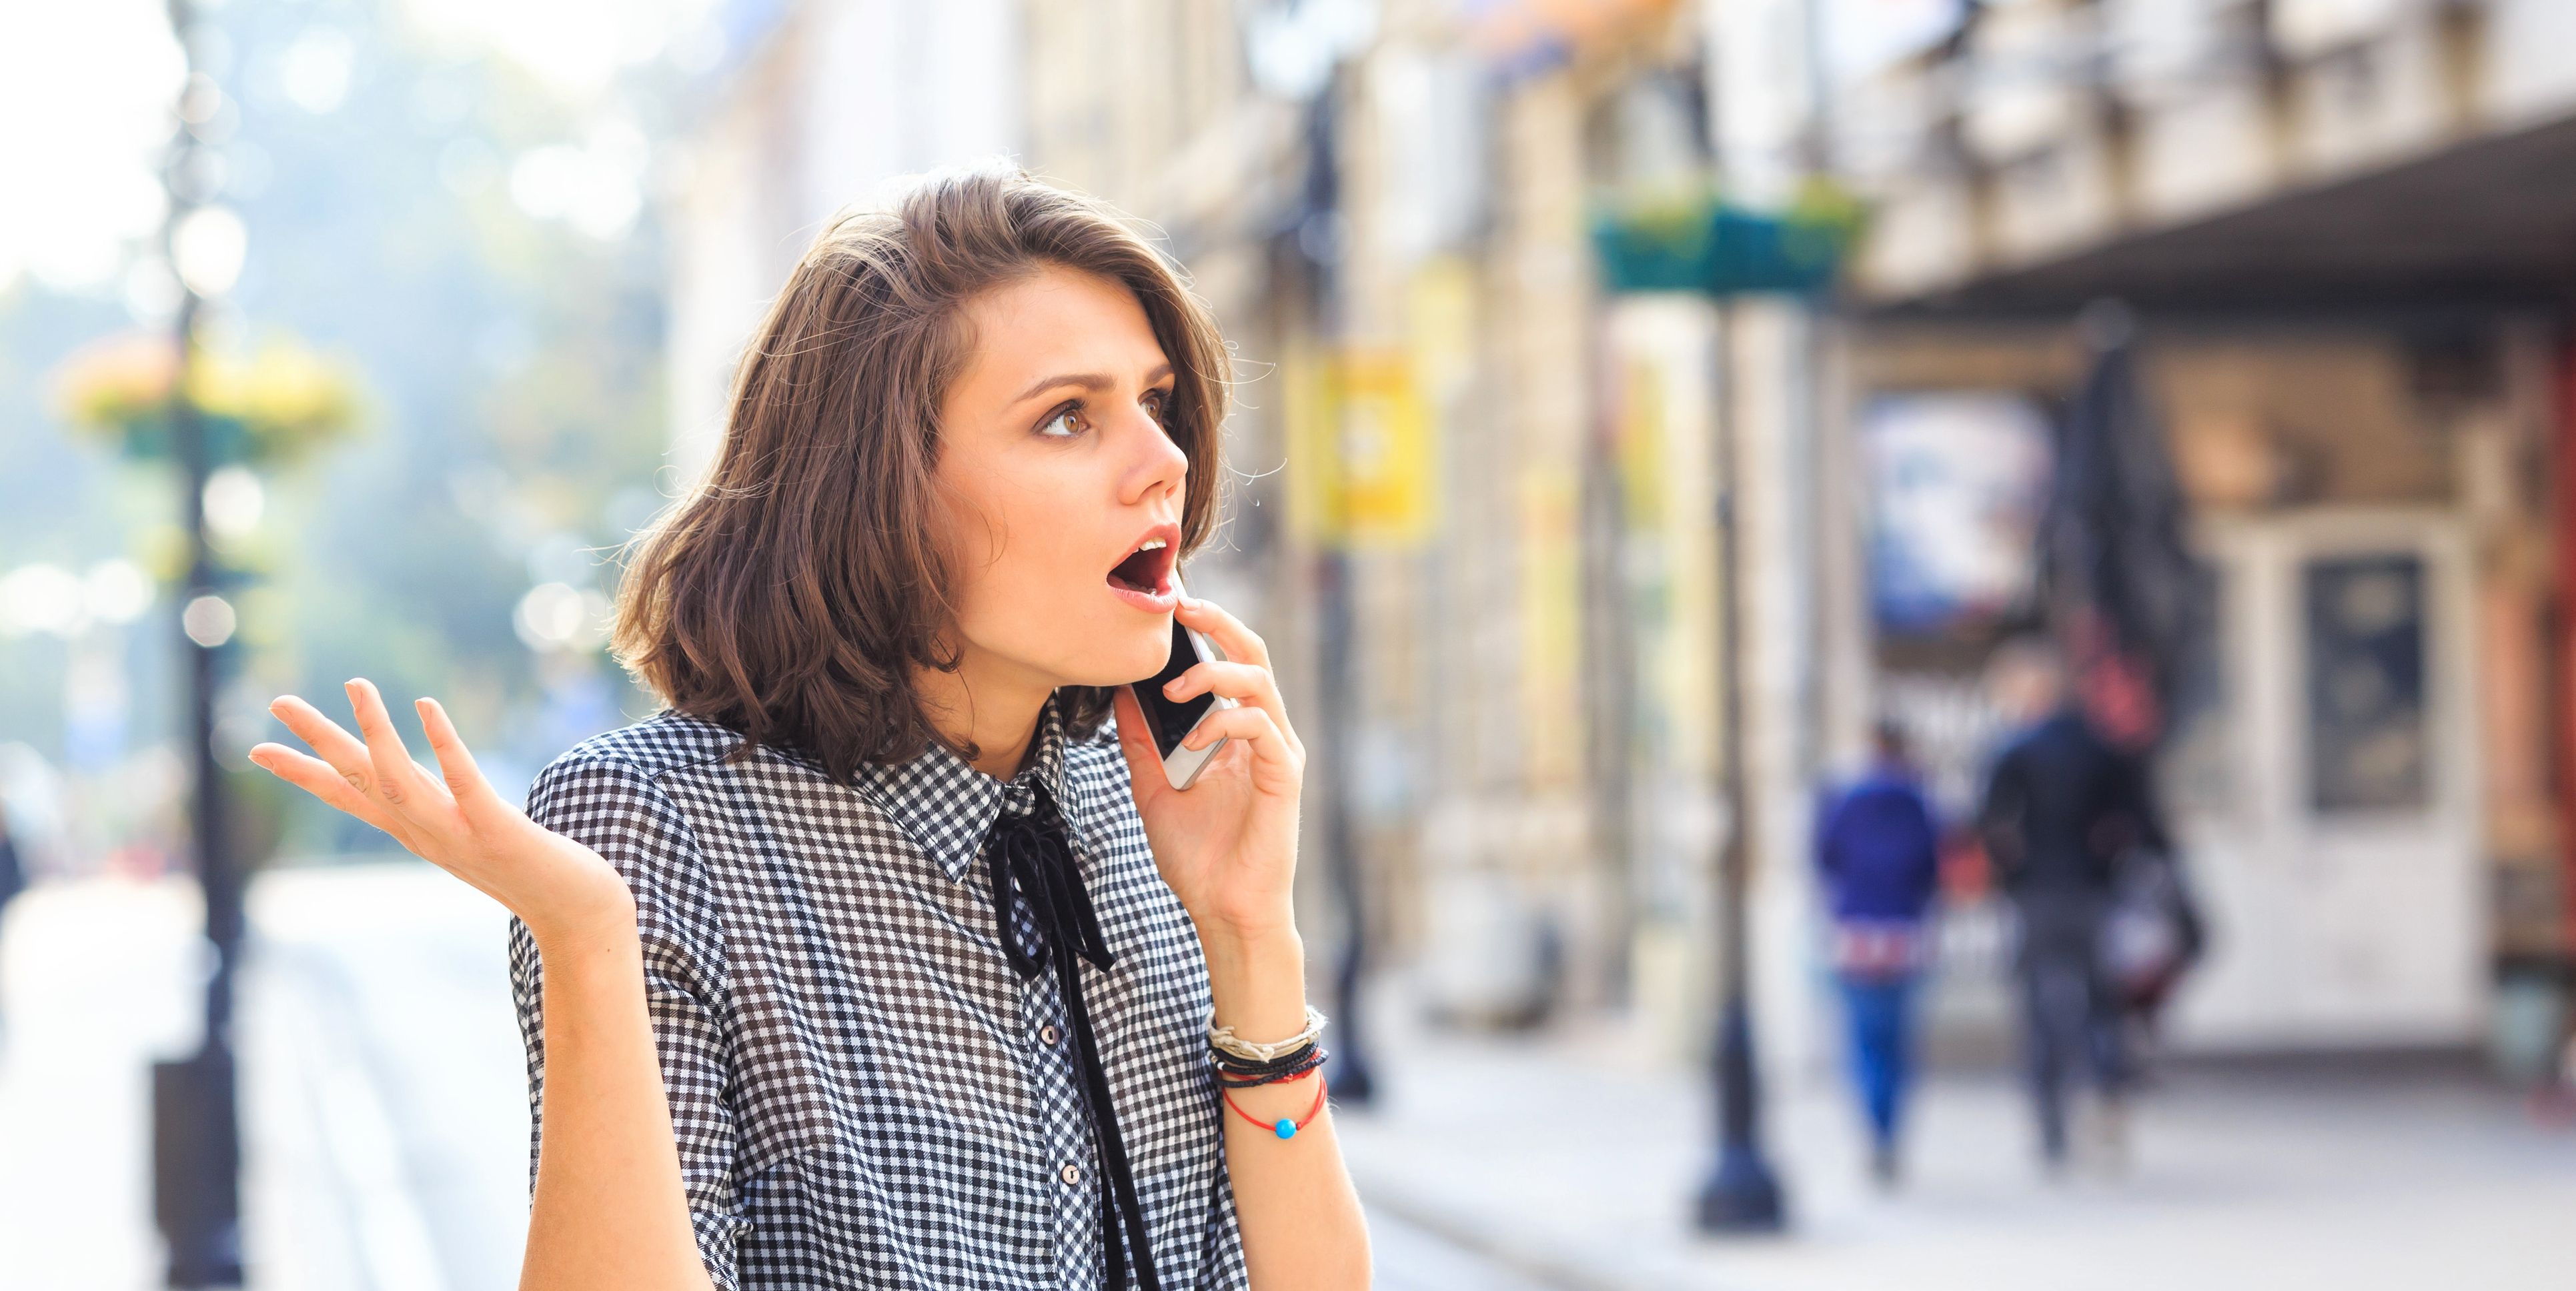 Angry woman talking on smart phone on street